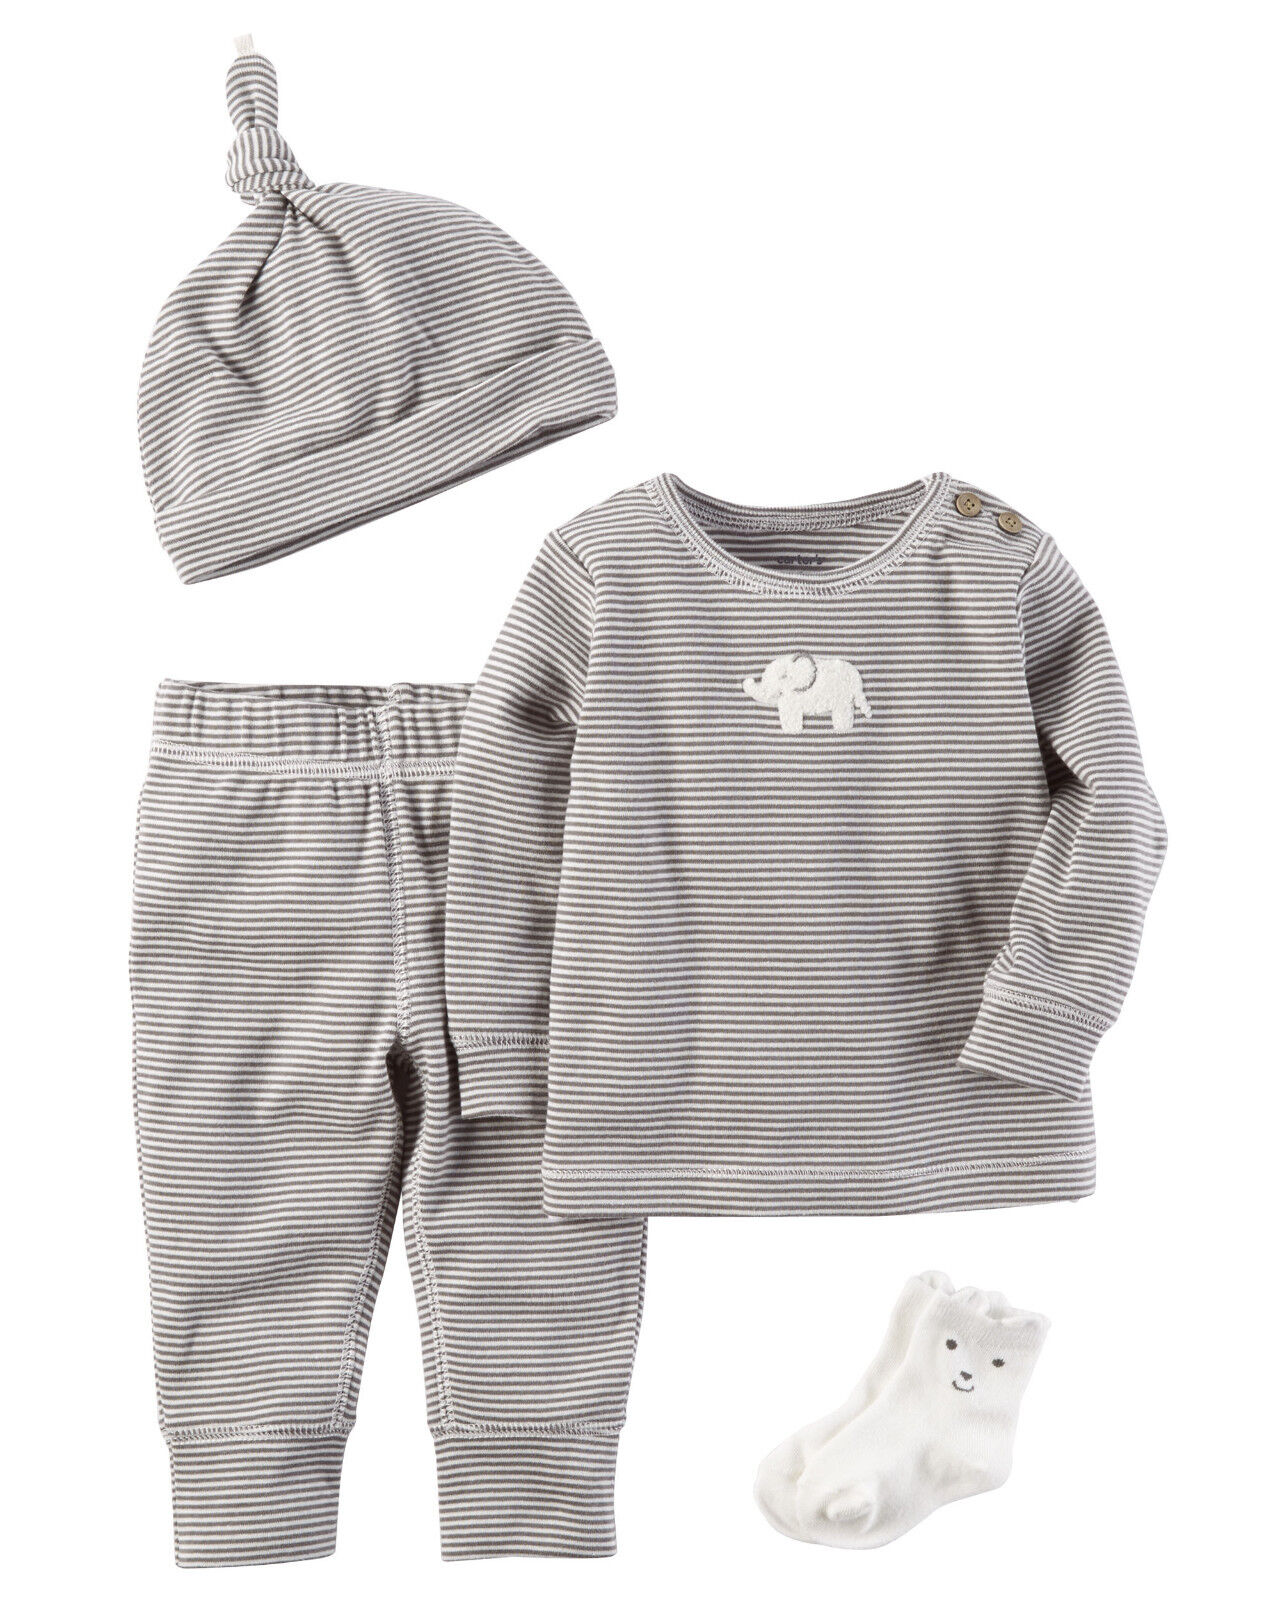 Carters 6 Months 4-Piece Gift Set Baby Boy Clothes Hat Socks